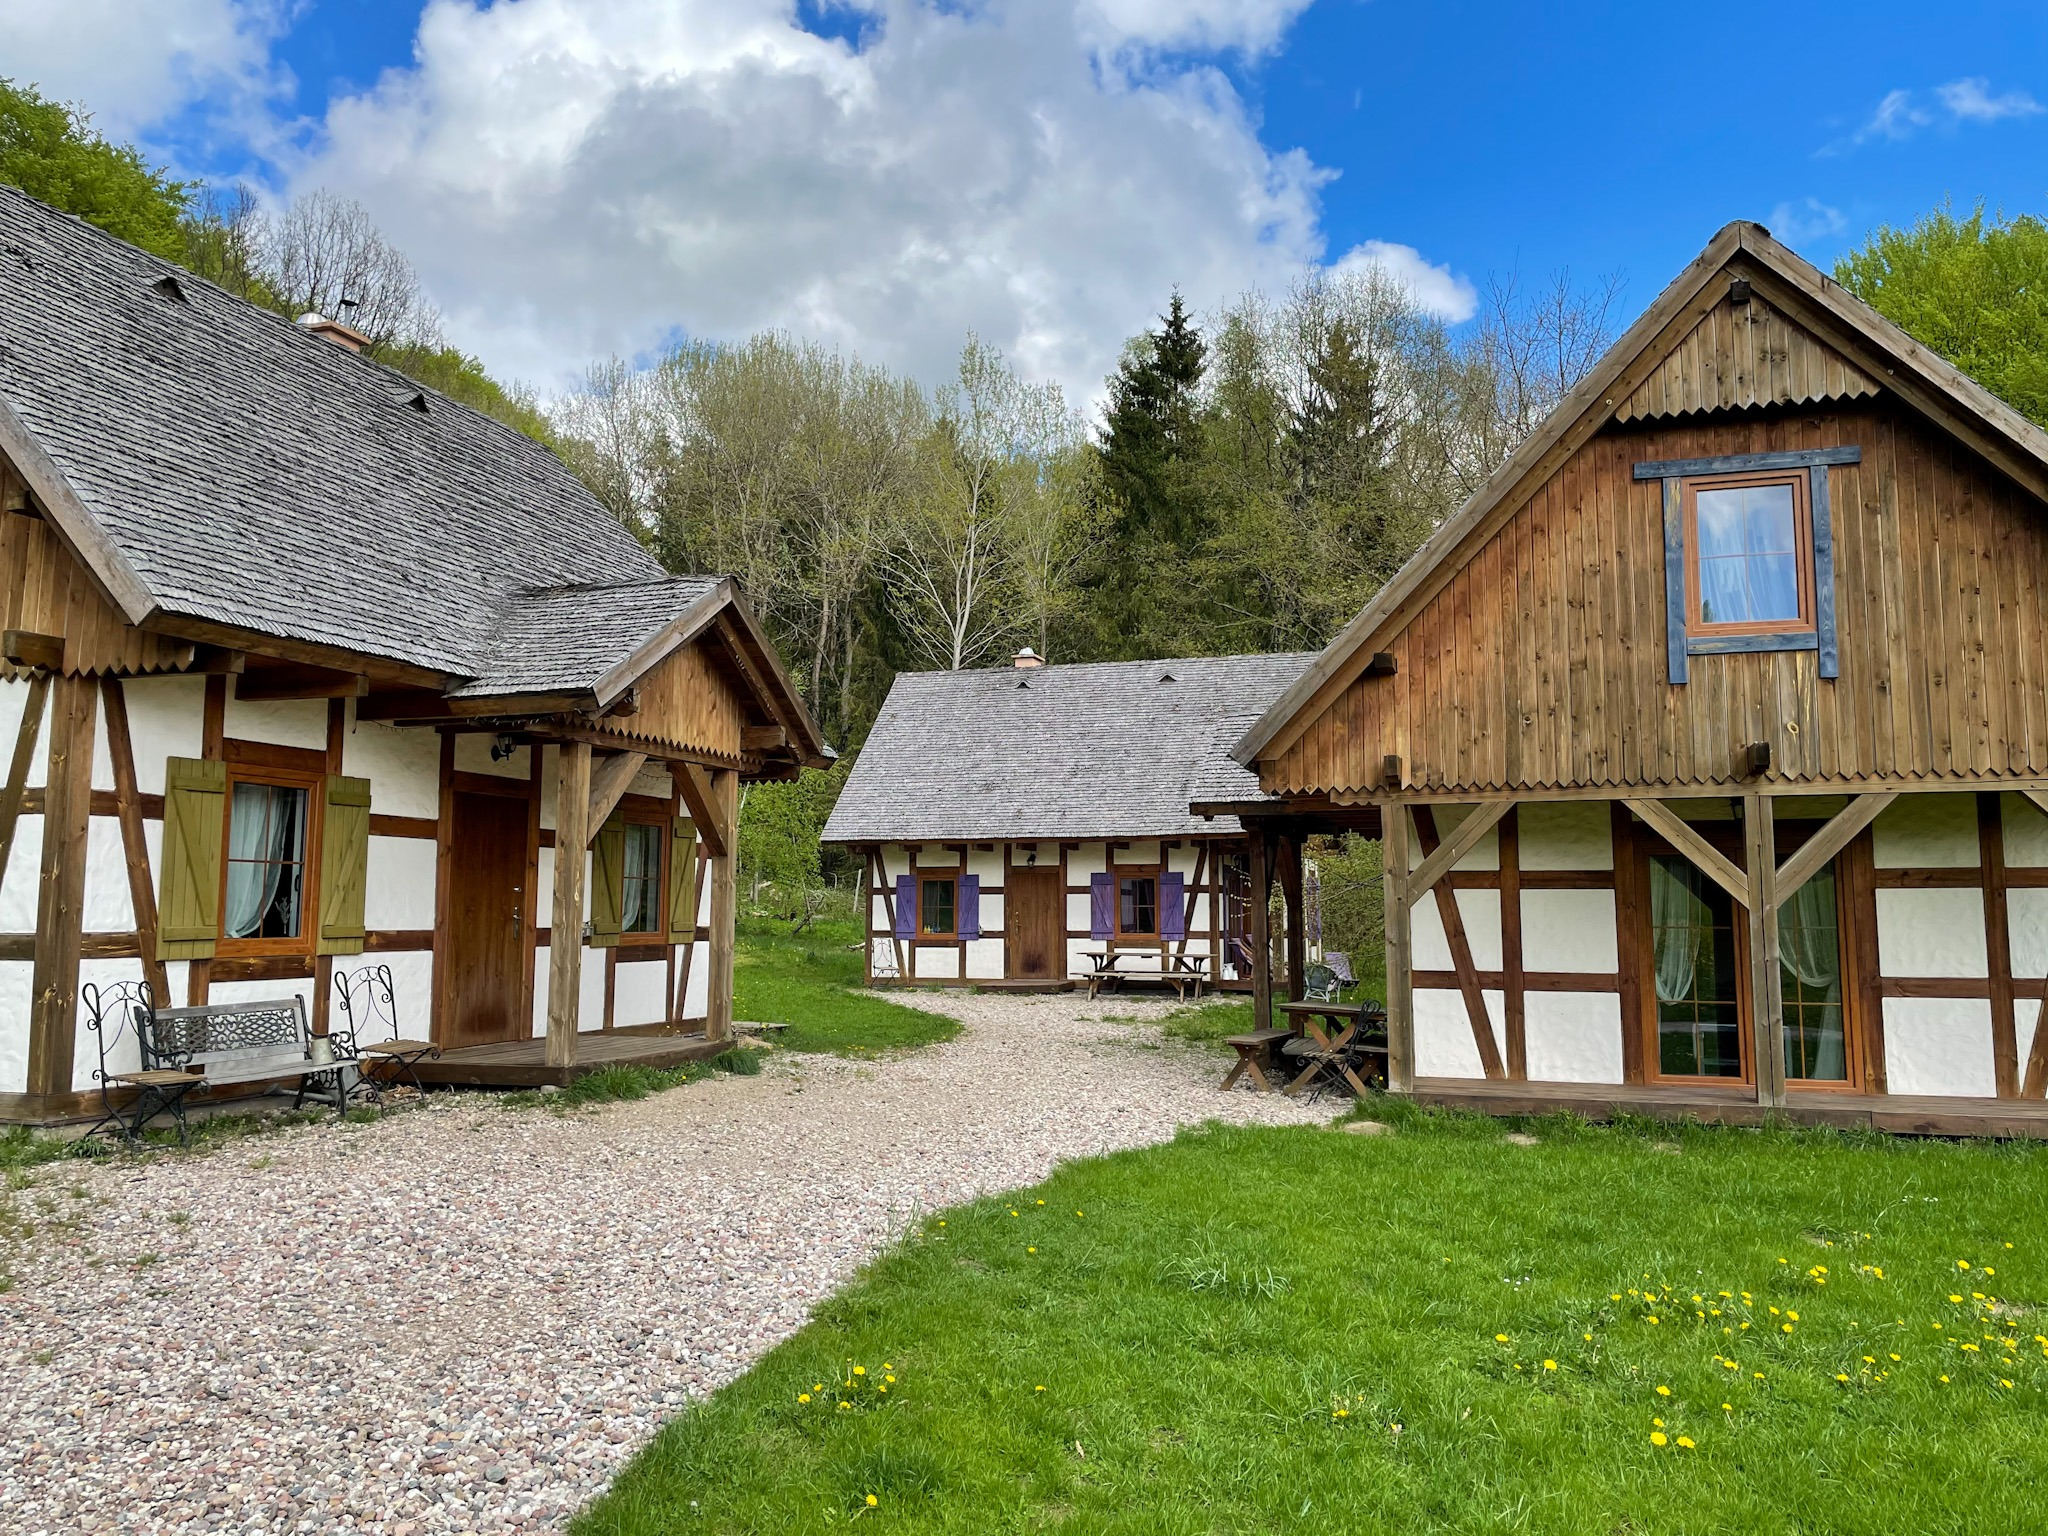 The Kashubian Switzerland 18 - The Kashubian Switzerland — tradition and mystery